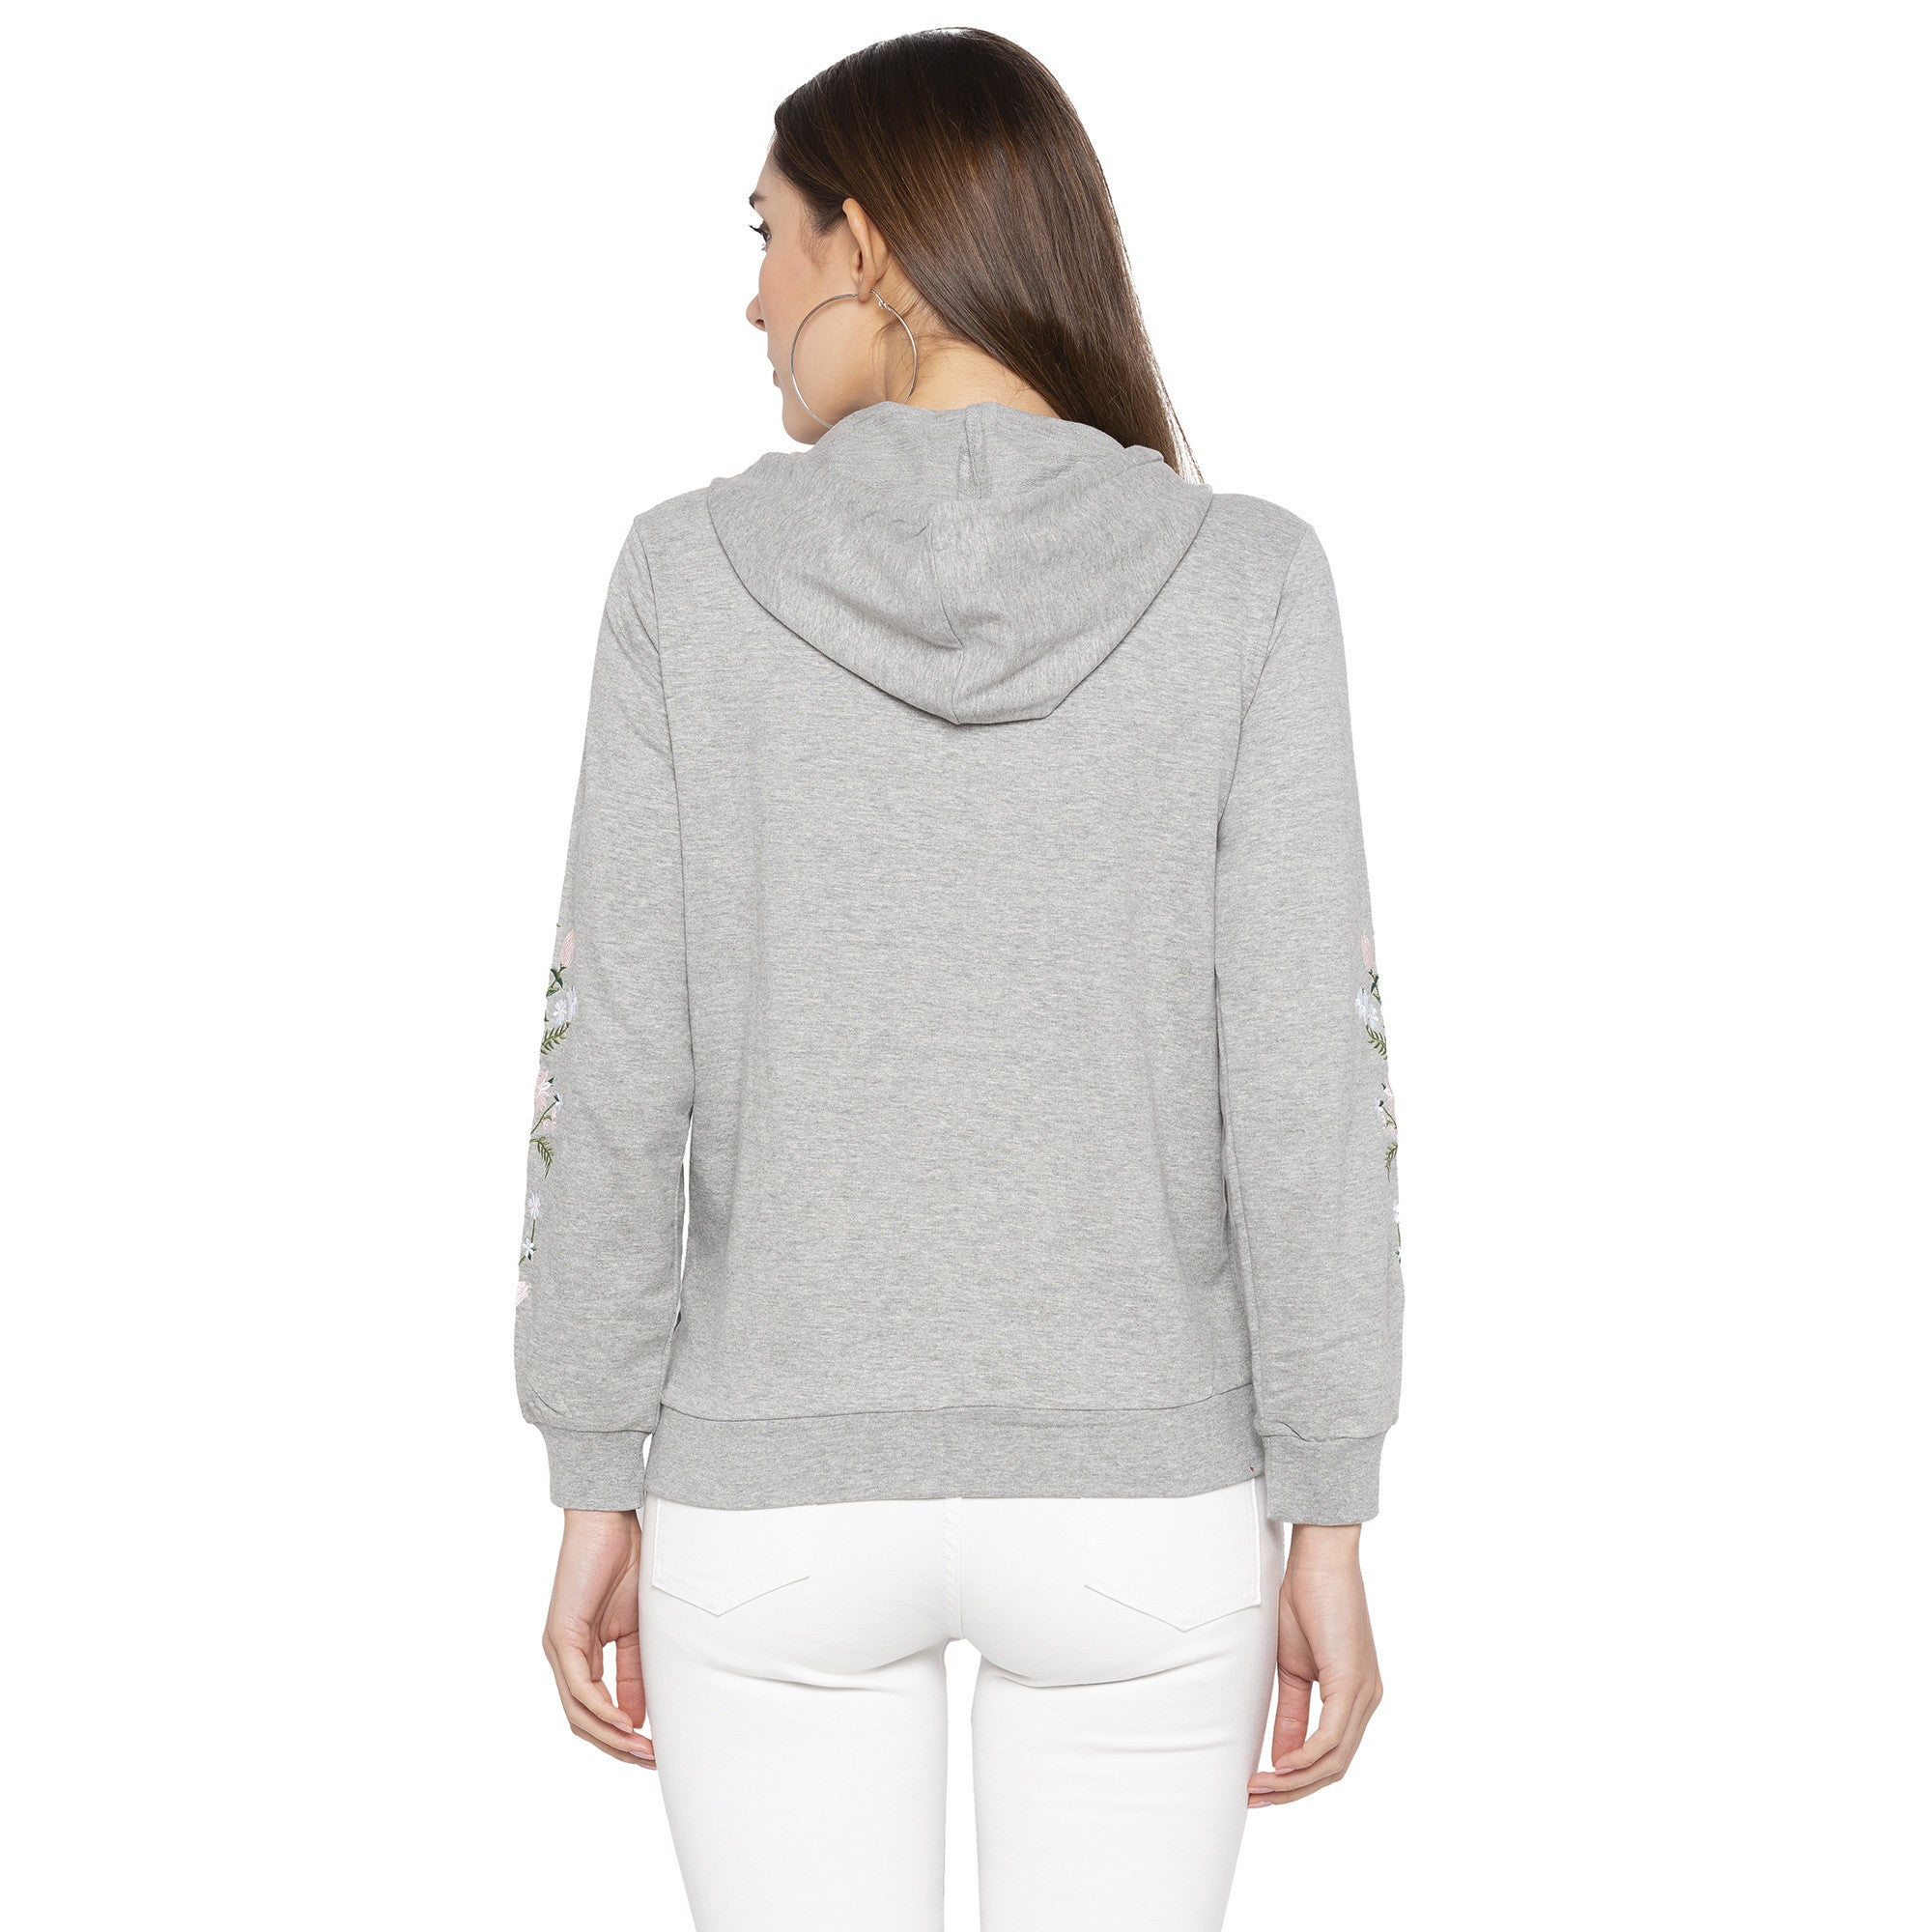 Casual Grey Color Solid Hooded Sweatshirt-3